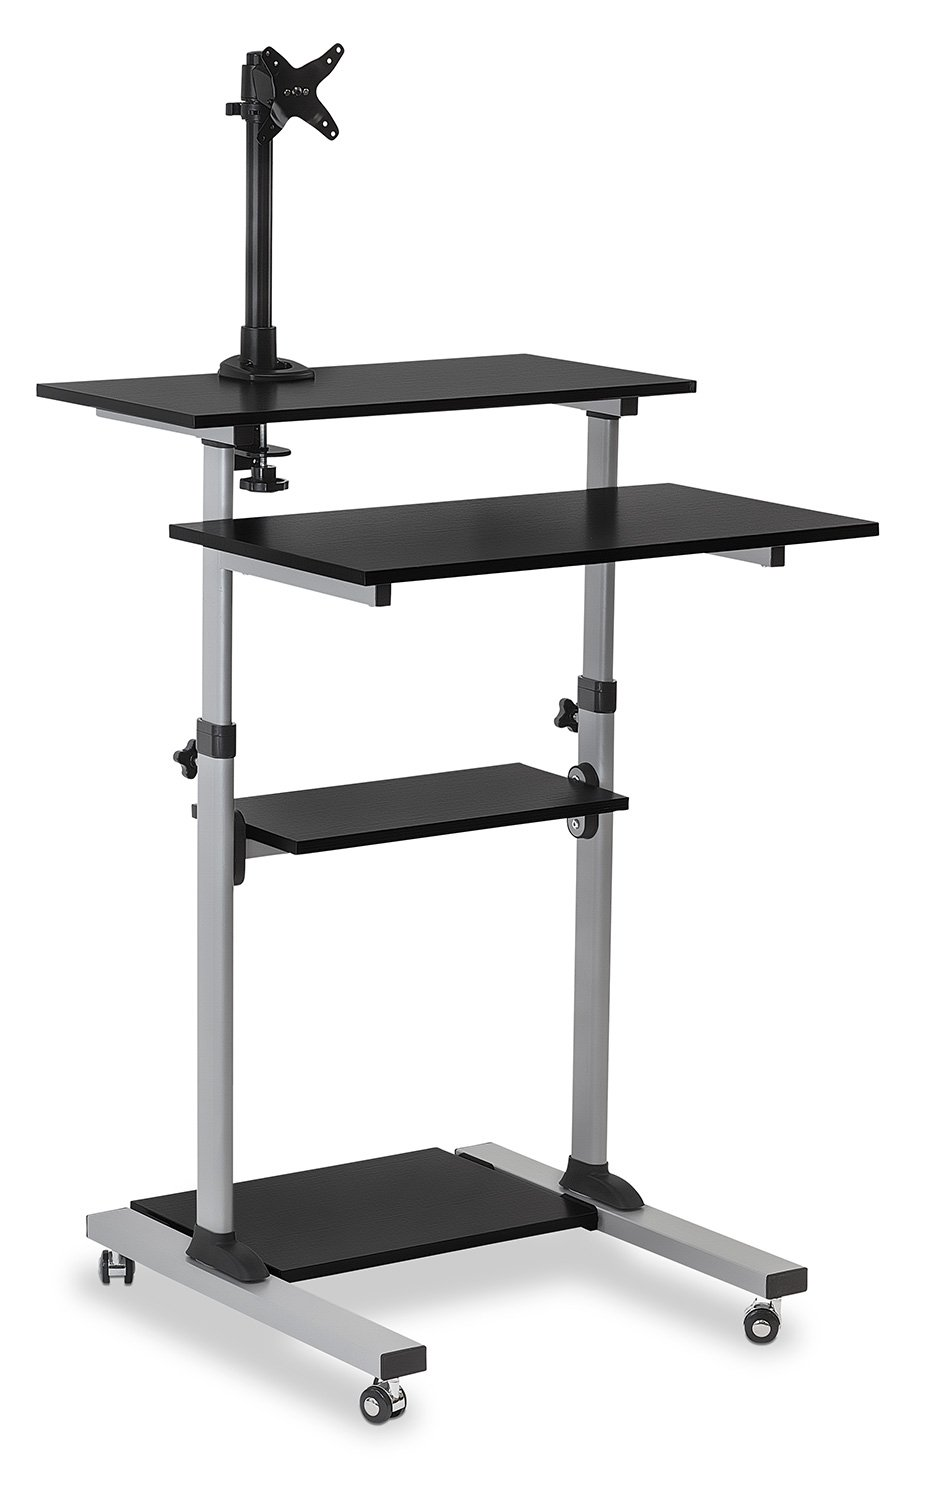 Mount-It! Mobile Stand Up Desk / Height Adjustable Computer Work Station Rolling Presentation Cart With Monitor Arm (MI-7942)